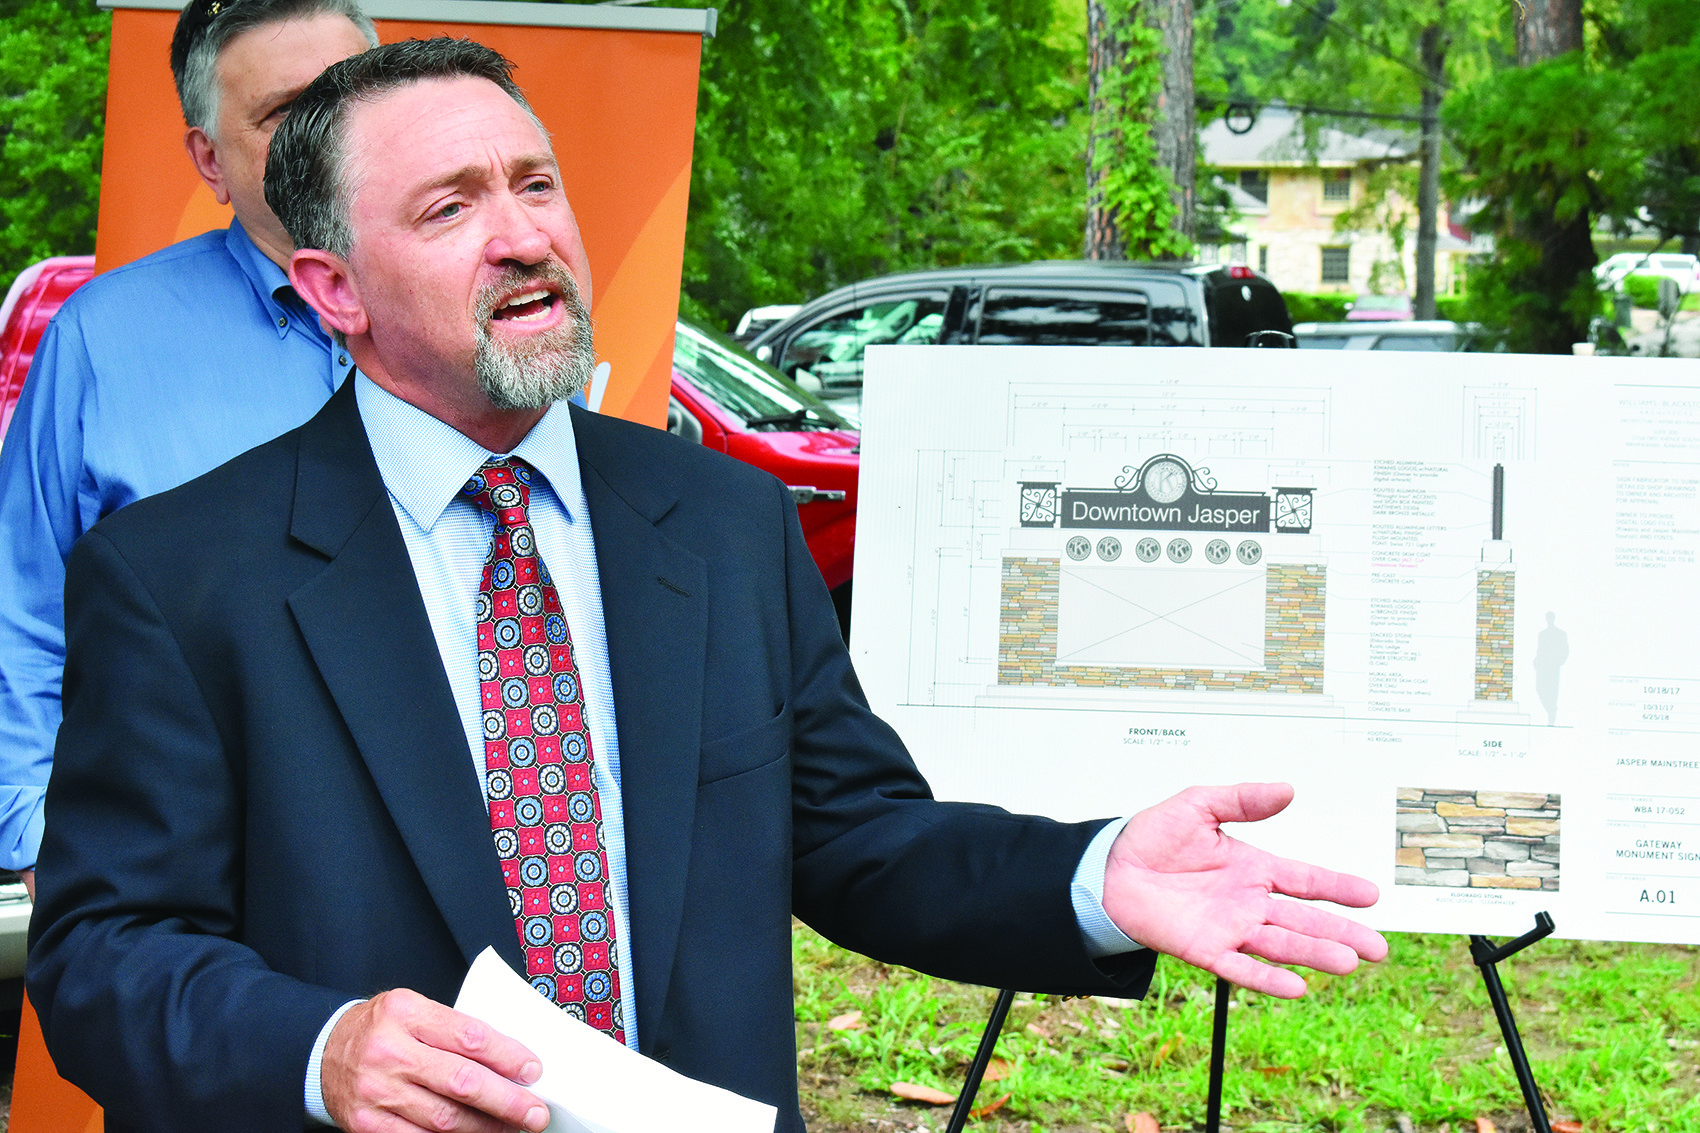 Todd Thompson of the Jasper Kiwanis Club speaks Friday near a rendering of the new Downtown Jasper sign to be in a new pocket park. Officials broke ground on the Kiwanis project Friday. Thompson was a coordinator for the project.